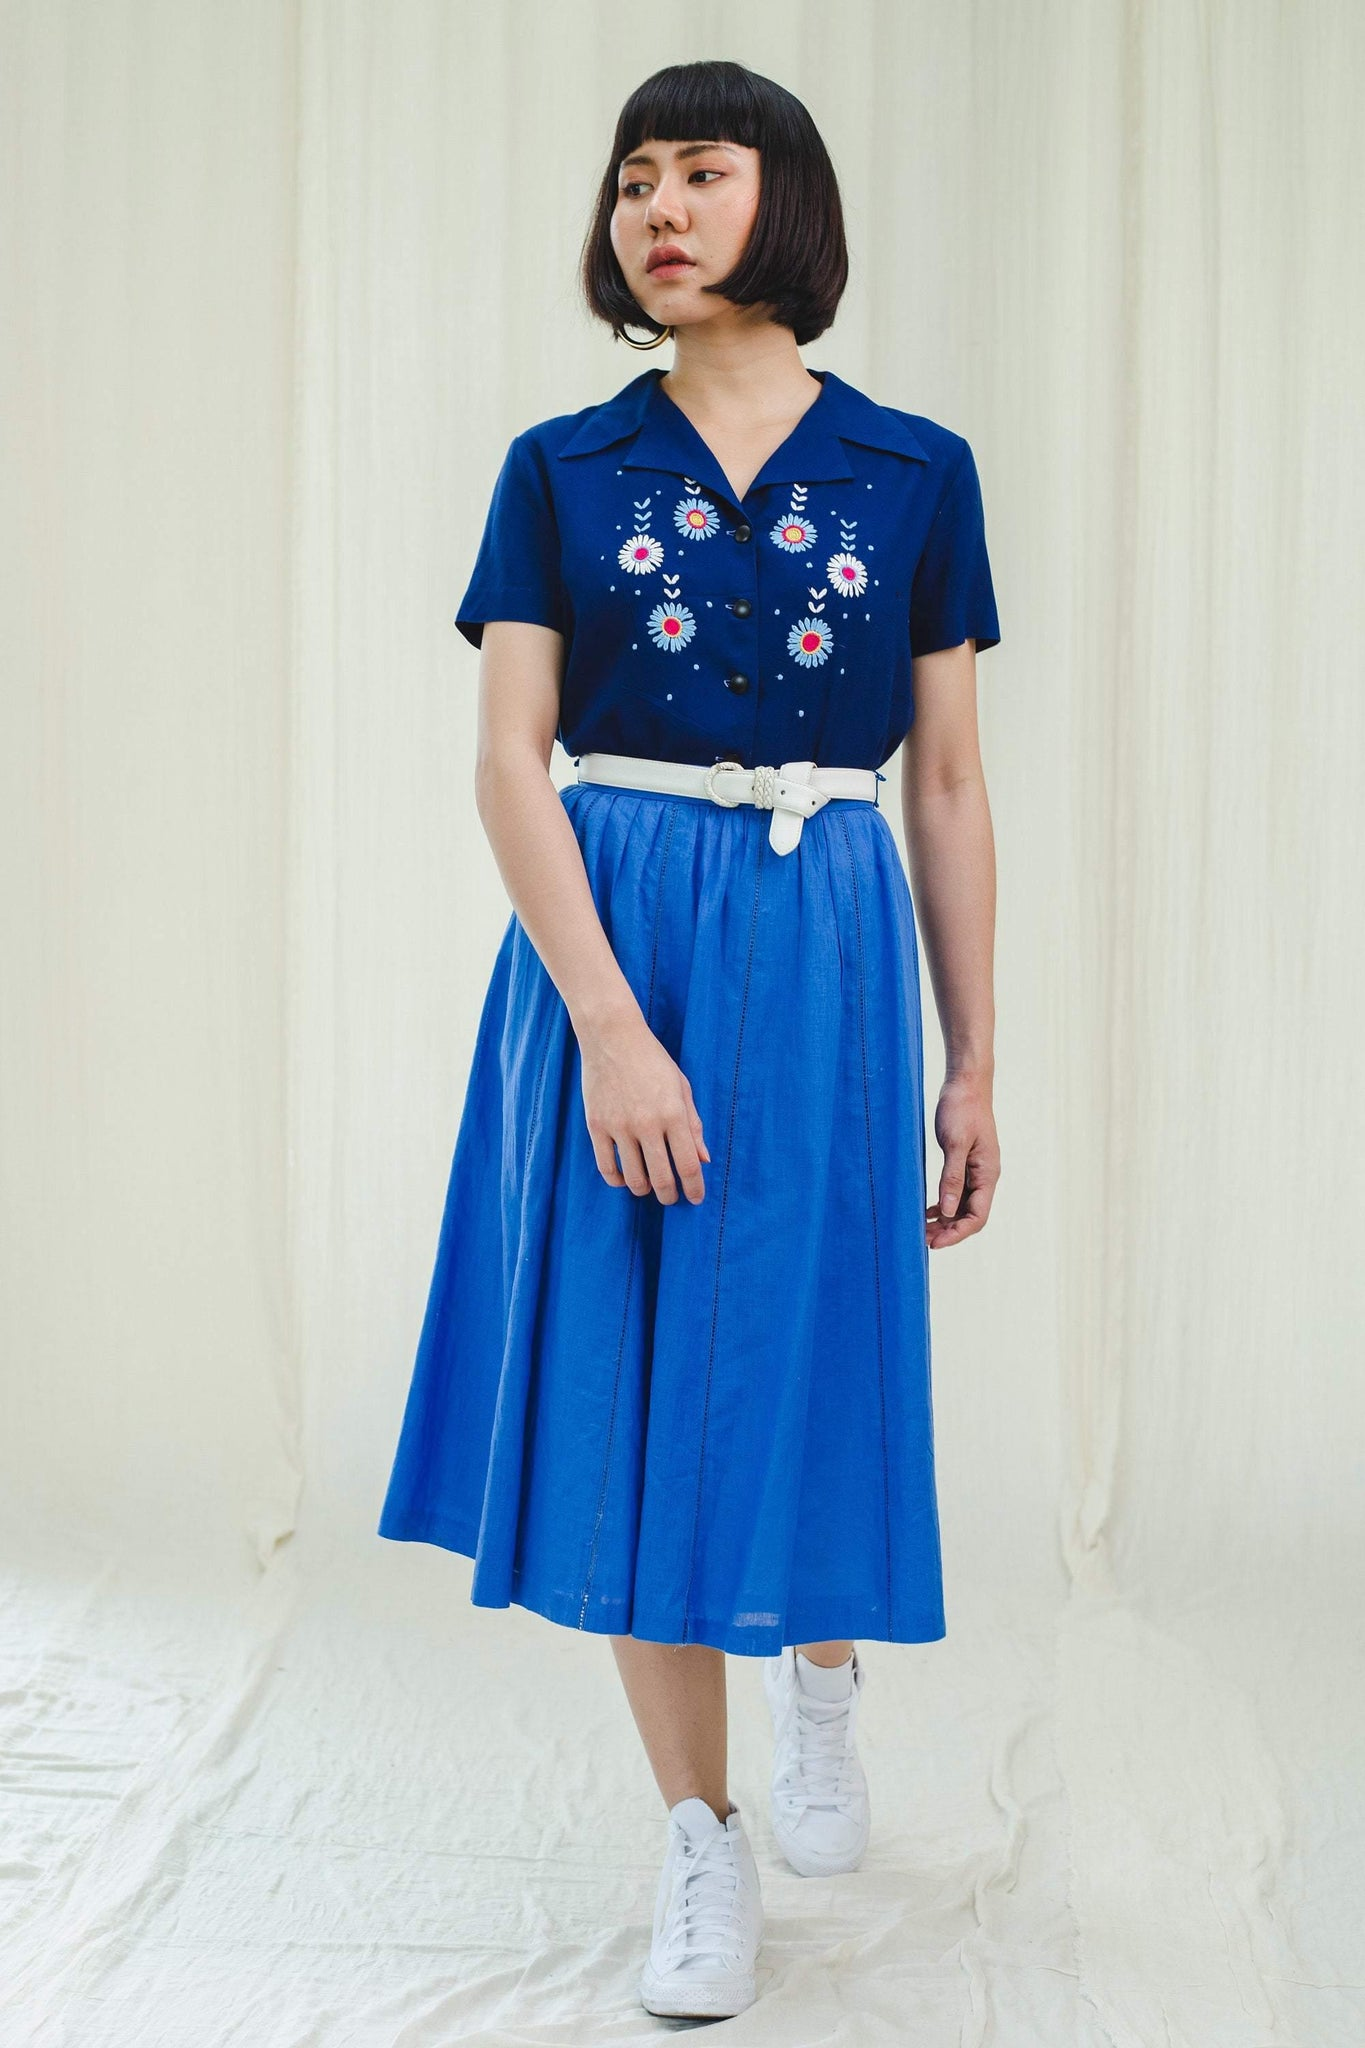 Skirt l 80's cotton skirt in blue - Sugar & Cream Vintage